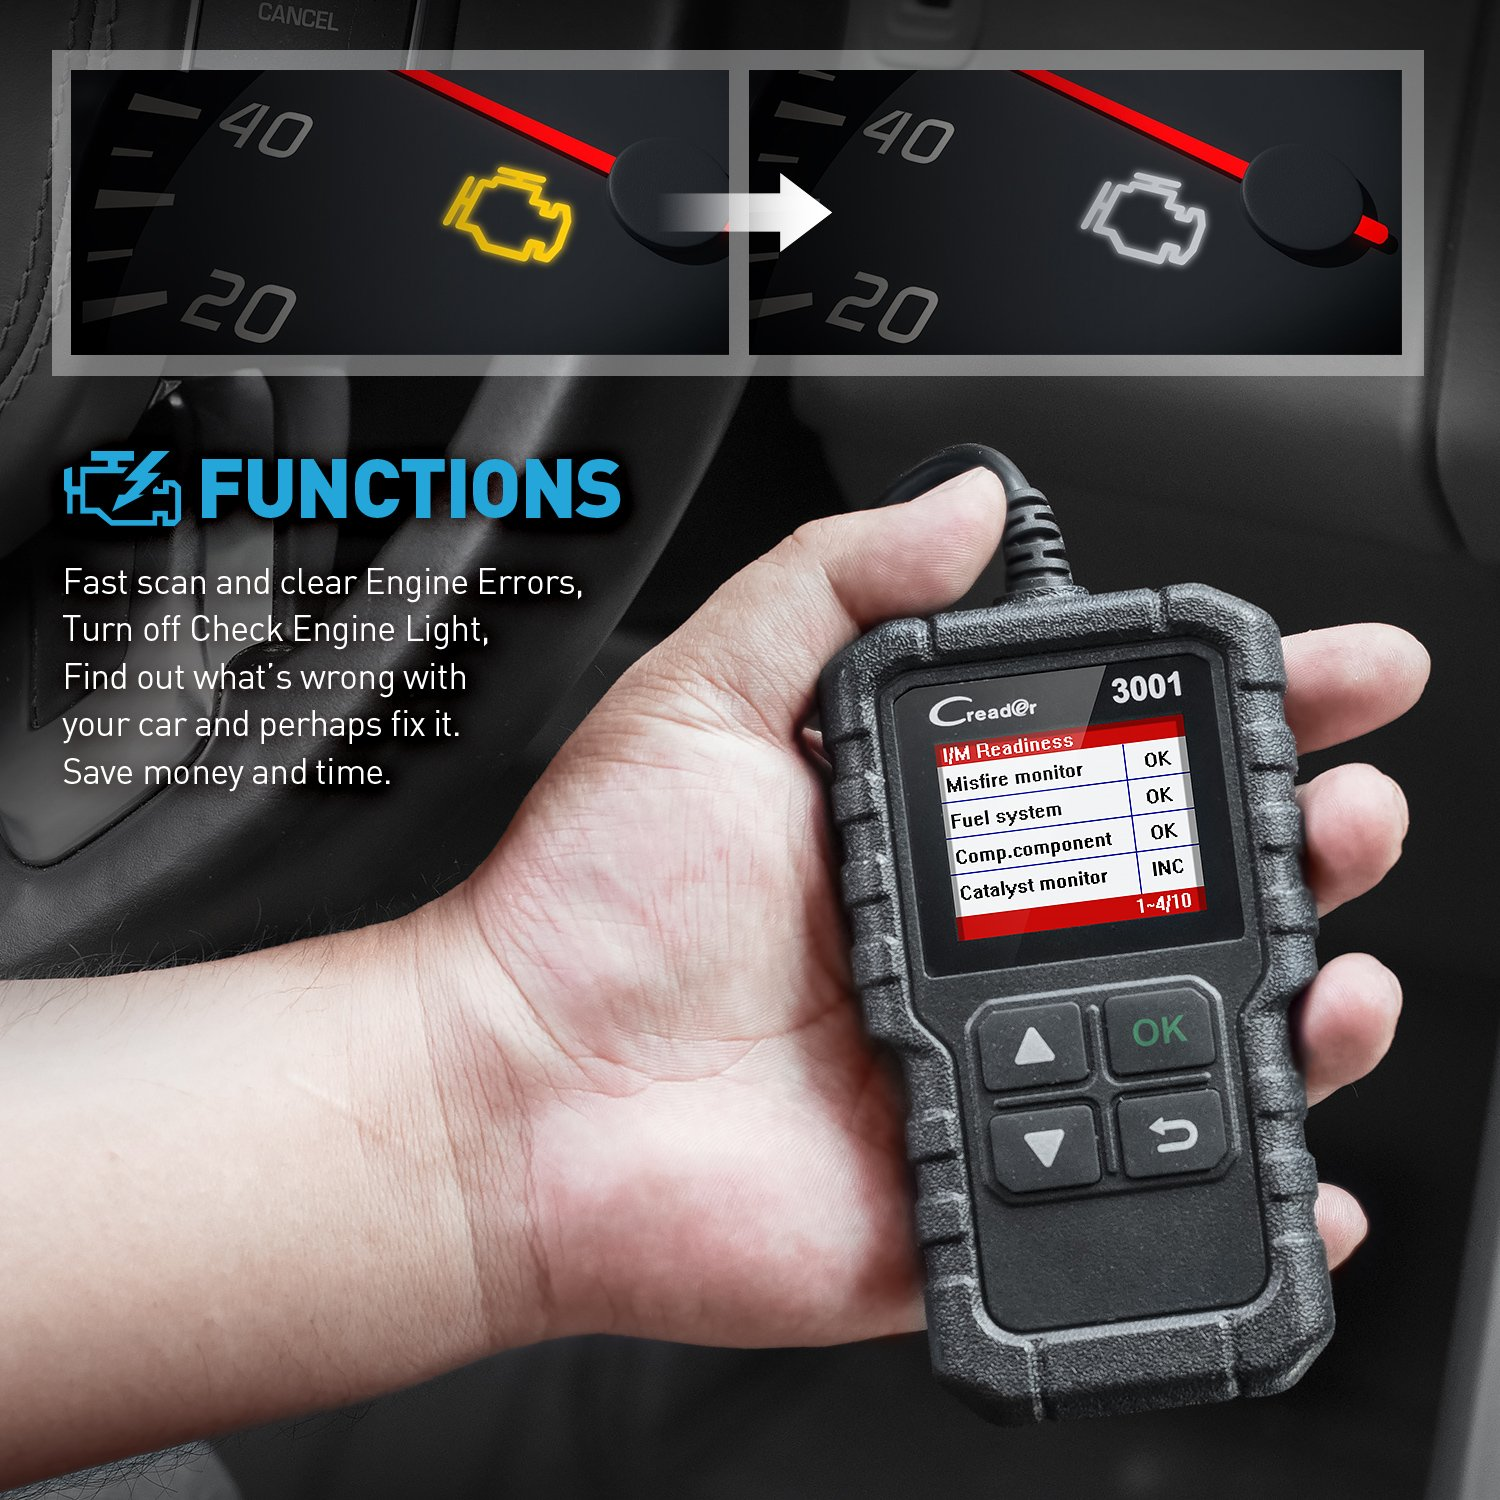 The 5 Car Diagnostic Tools You Must Have In Your Garage: 2020 Reviews & Buying Guide 4